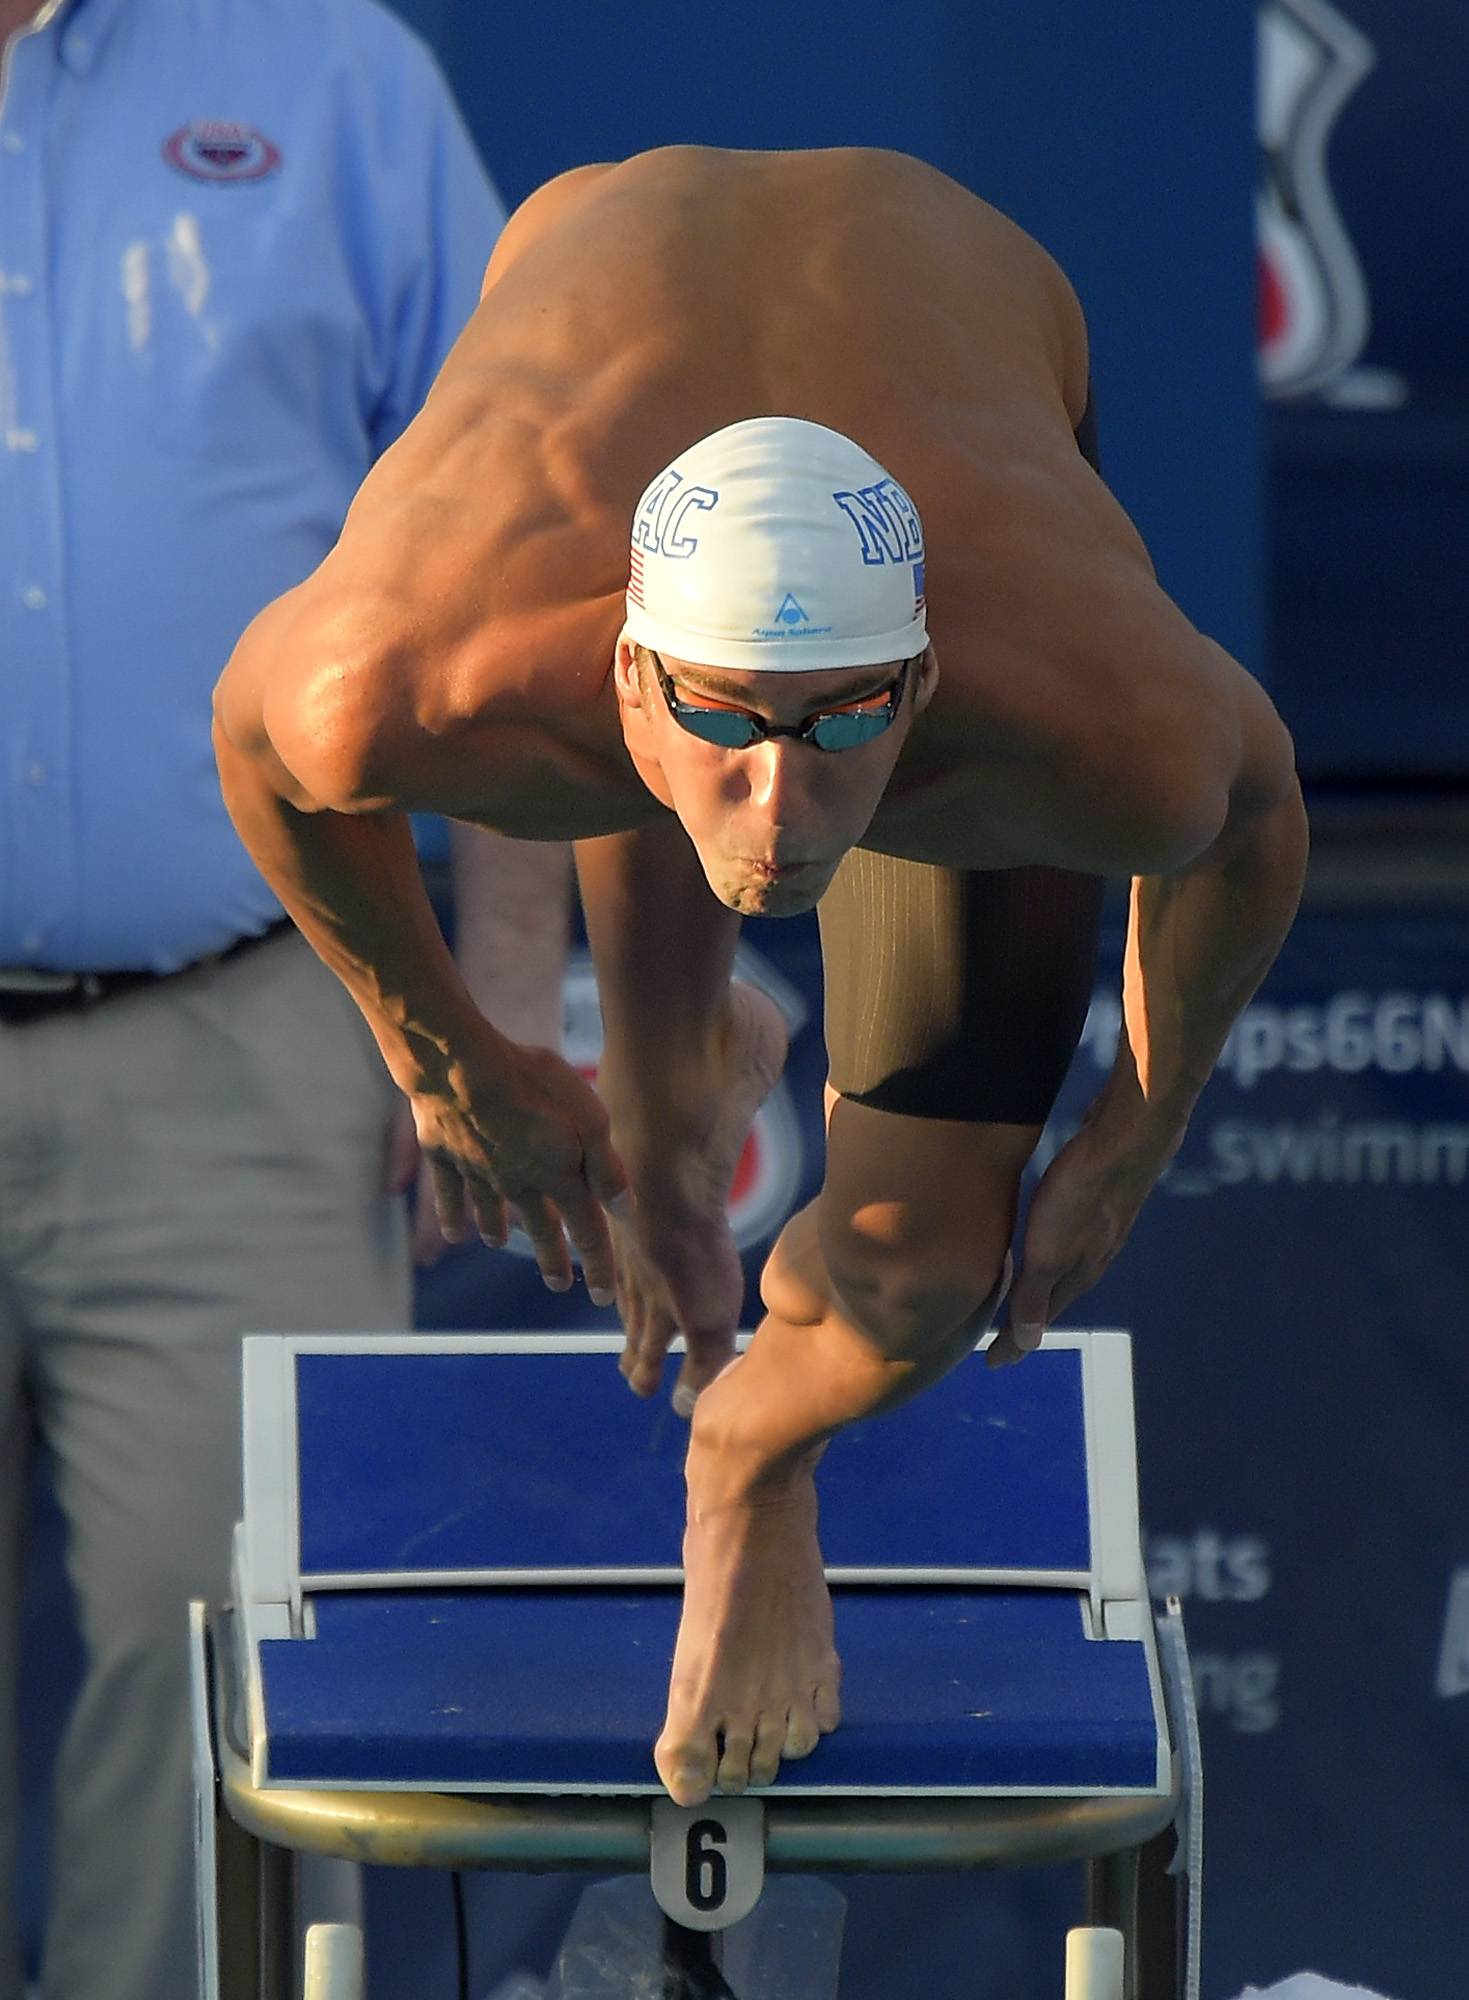 Michael Phelps starts the men's 200-meter individual medley final Aug. 10 at the U.S. nationals in Irvine, Calif